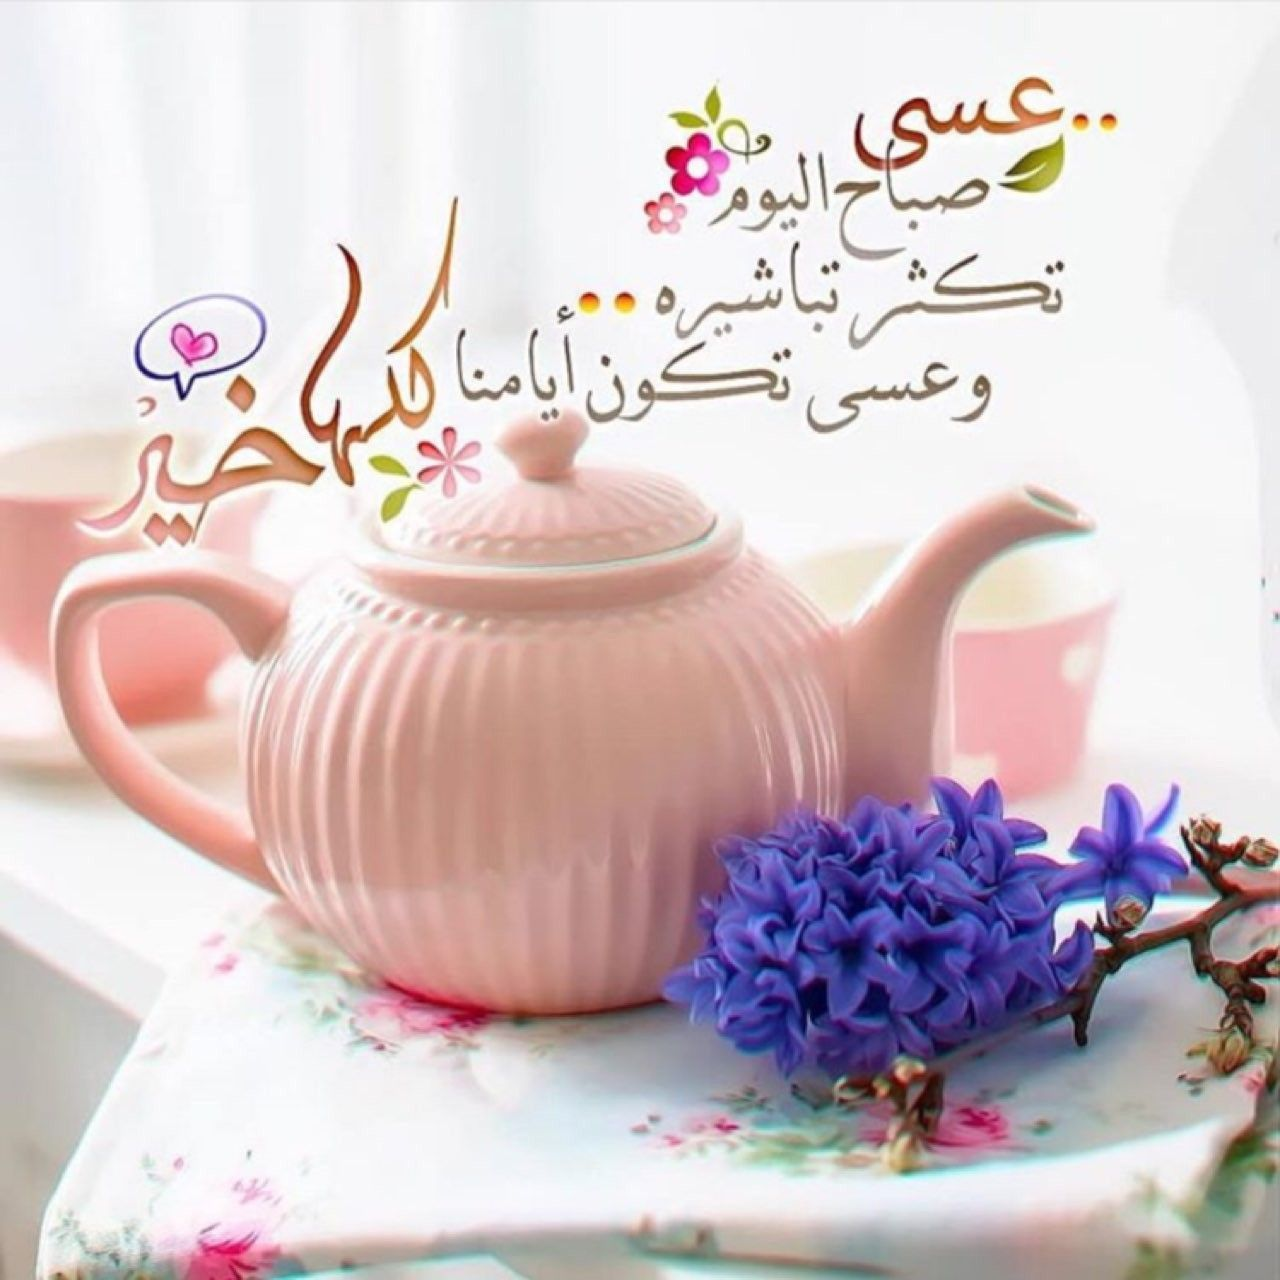 عسى صباح اليوم Beautiful Morning Messages Good Morning Greetings Morning Greeting